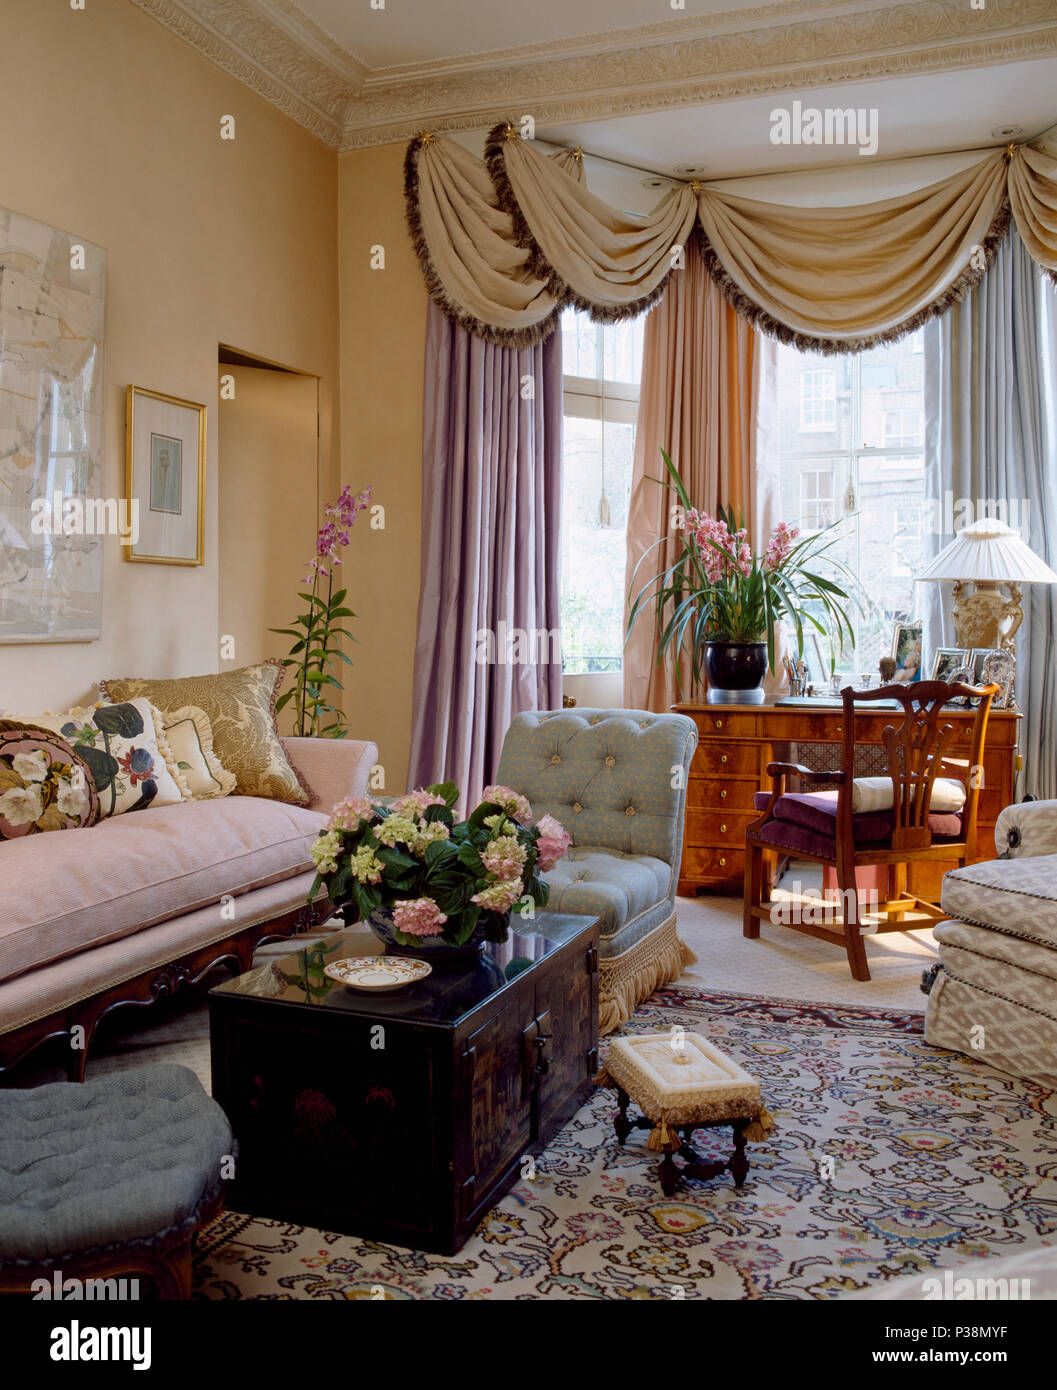 Swagged Pelmets And Silk Curtains On Bay Window In Opulent Townhouse Living  Room With Antique Wooden Chest